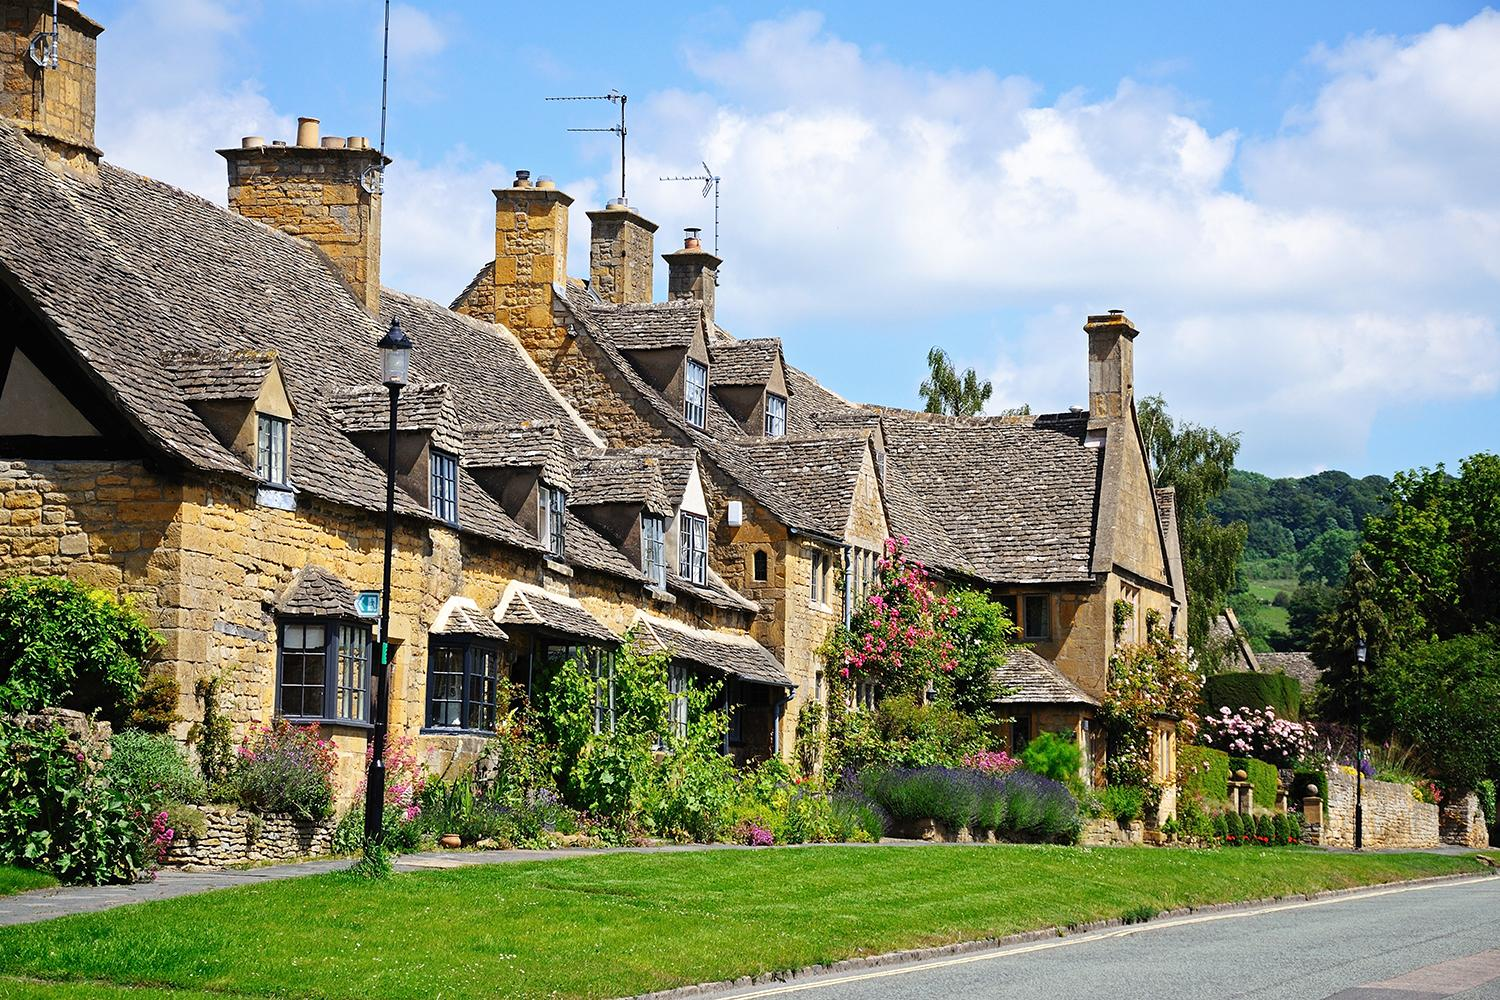 Cycling in the Heart of the Cotswolds